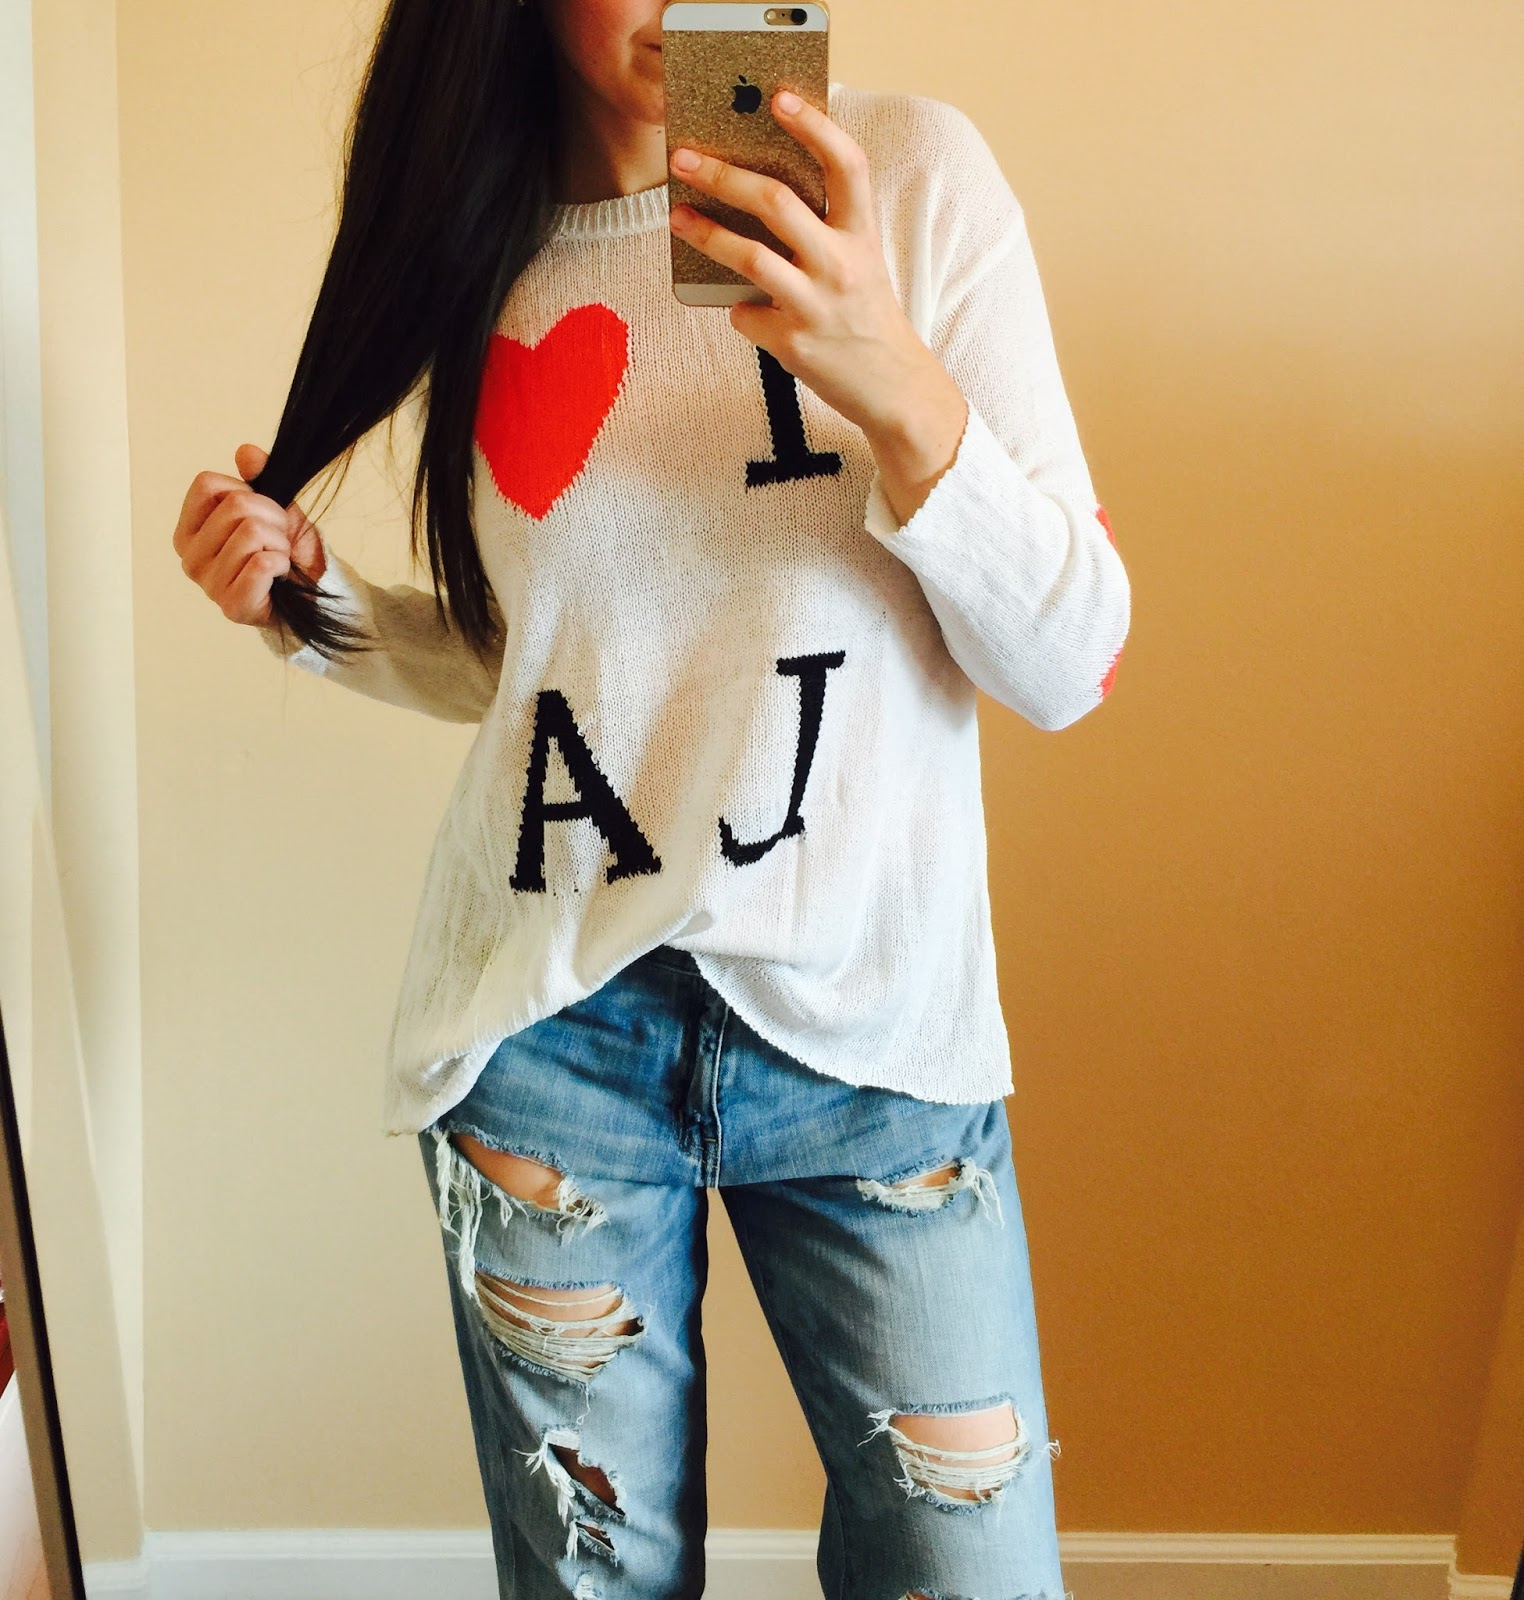 annabri clothing, annabri i <3 LA sweater, I LOVE LOS ANGELES HEART SWEATER, annabri sweater, boyfriend jeans, how to style a chunky sweater, pretty, heart on elbow sweater,